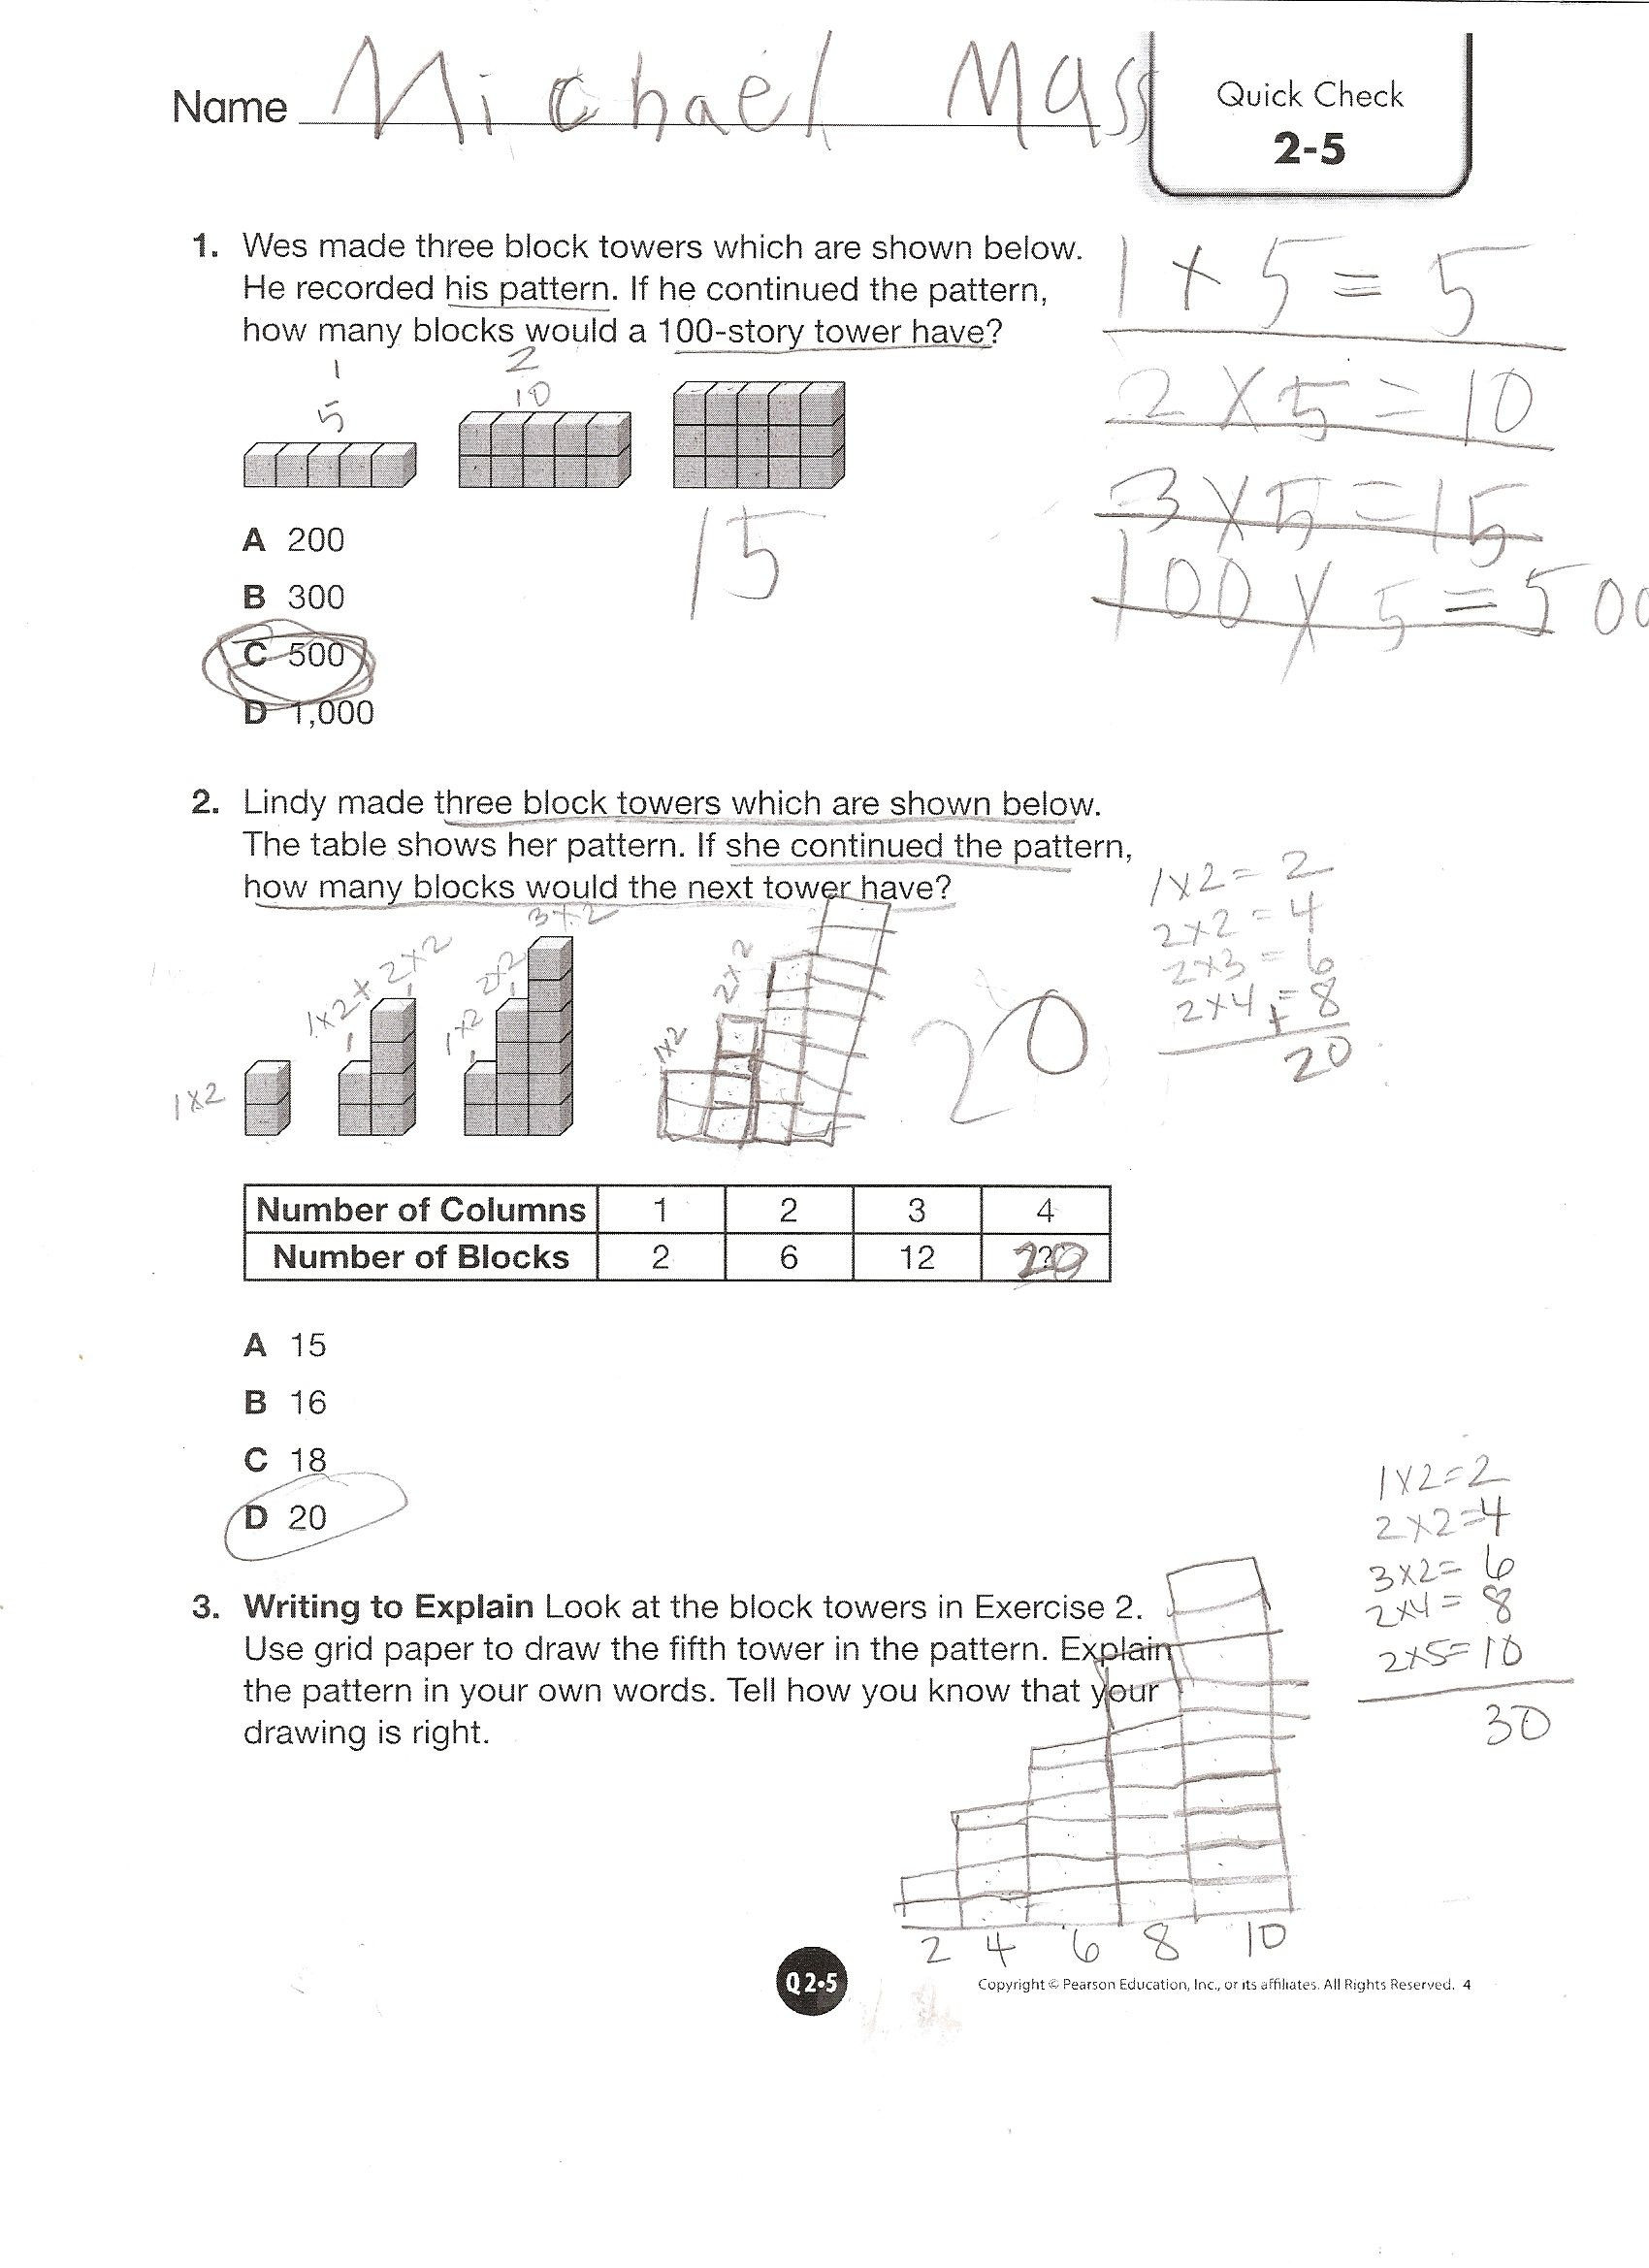 Envision Math 1st Grade Worksheets Envision Math Grade topic Quick Check Worksheets Cm Squared